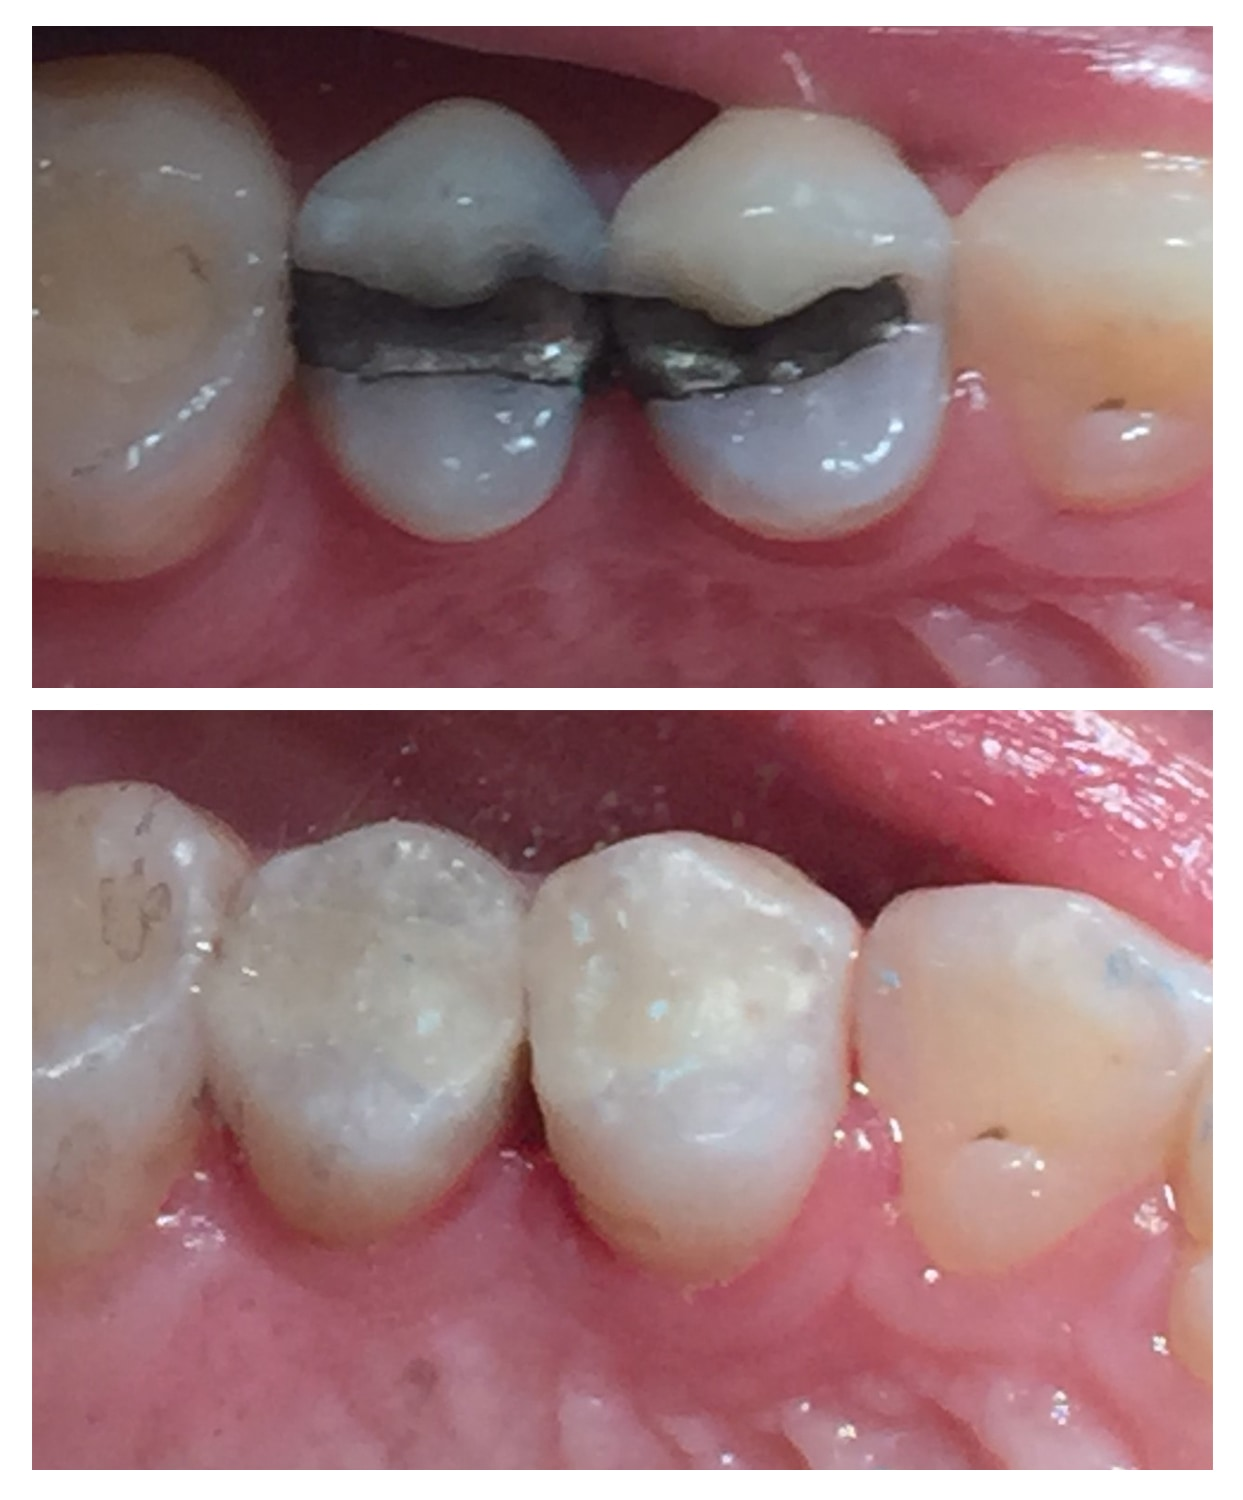 Patients teeth after amalgam and composite fillings by Encino dentist at Encino Cosmetic Dentistry.